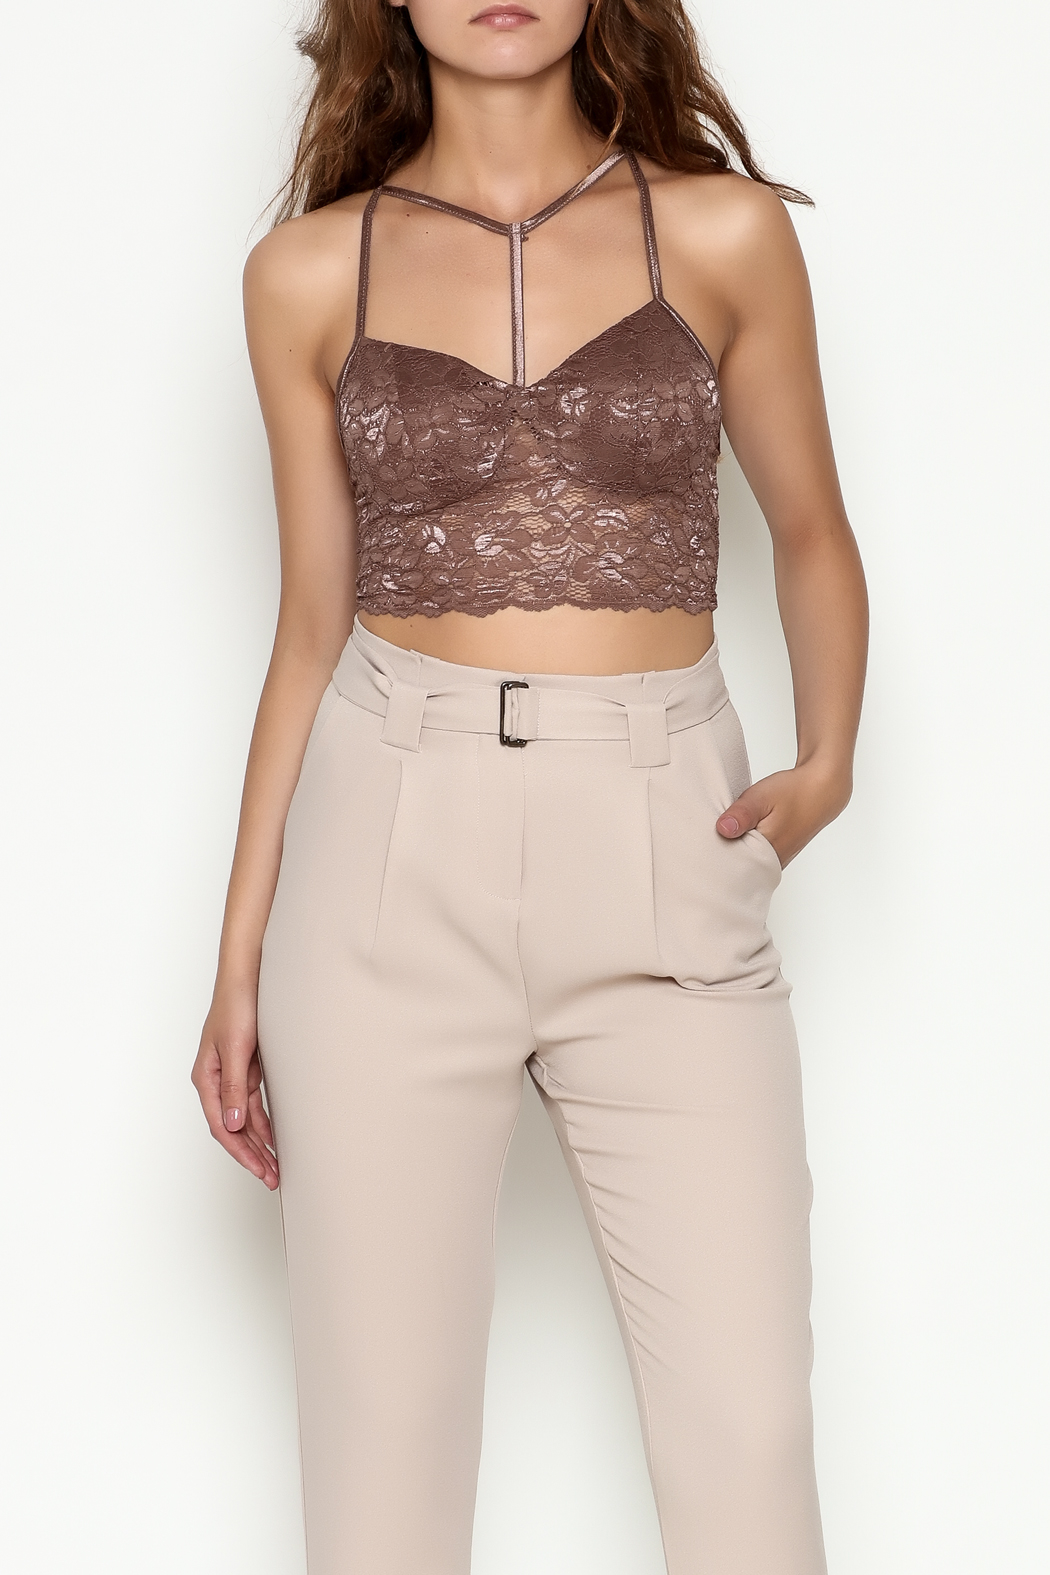 Bozzolo Lace Strap Bralette - Front Cropped Image